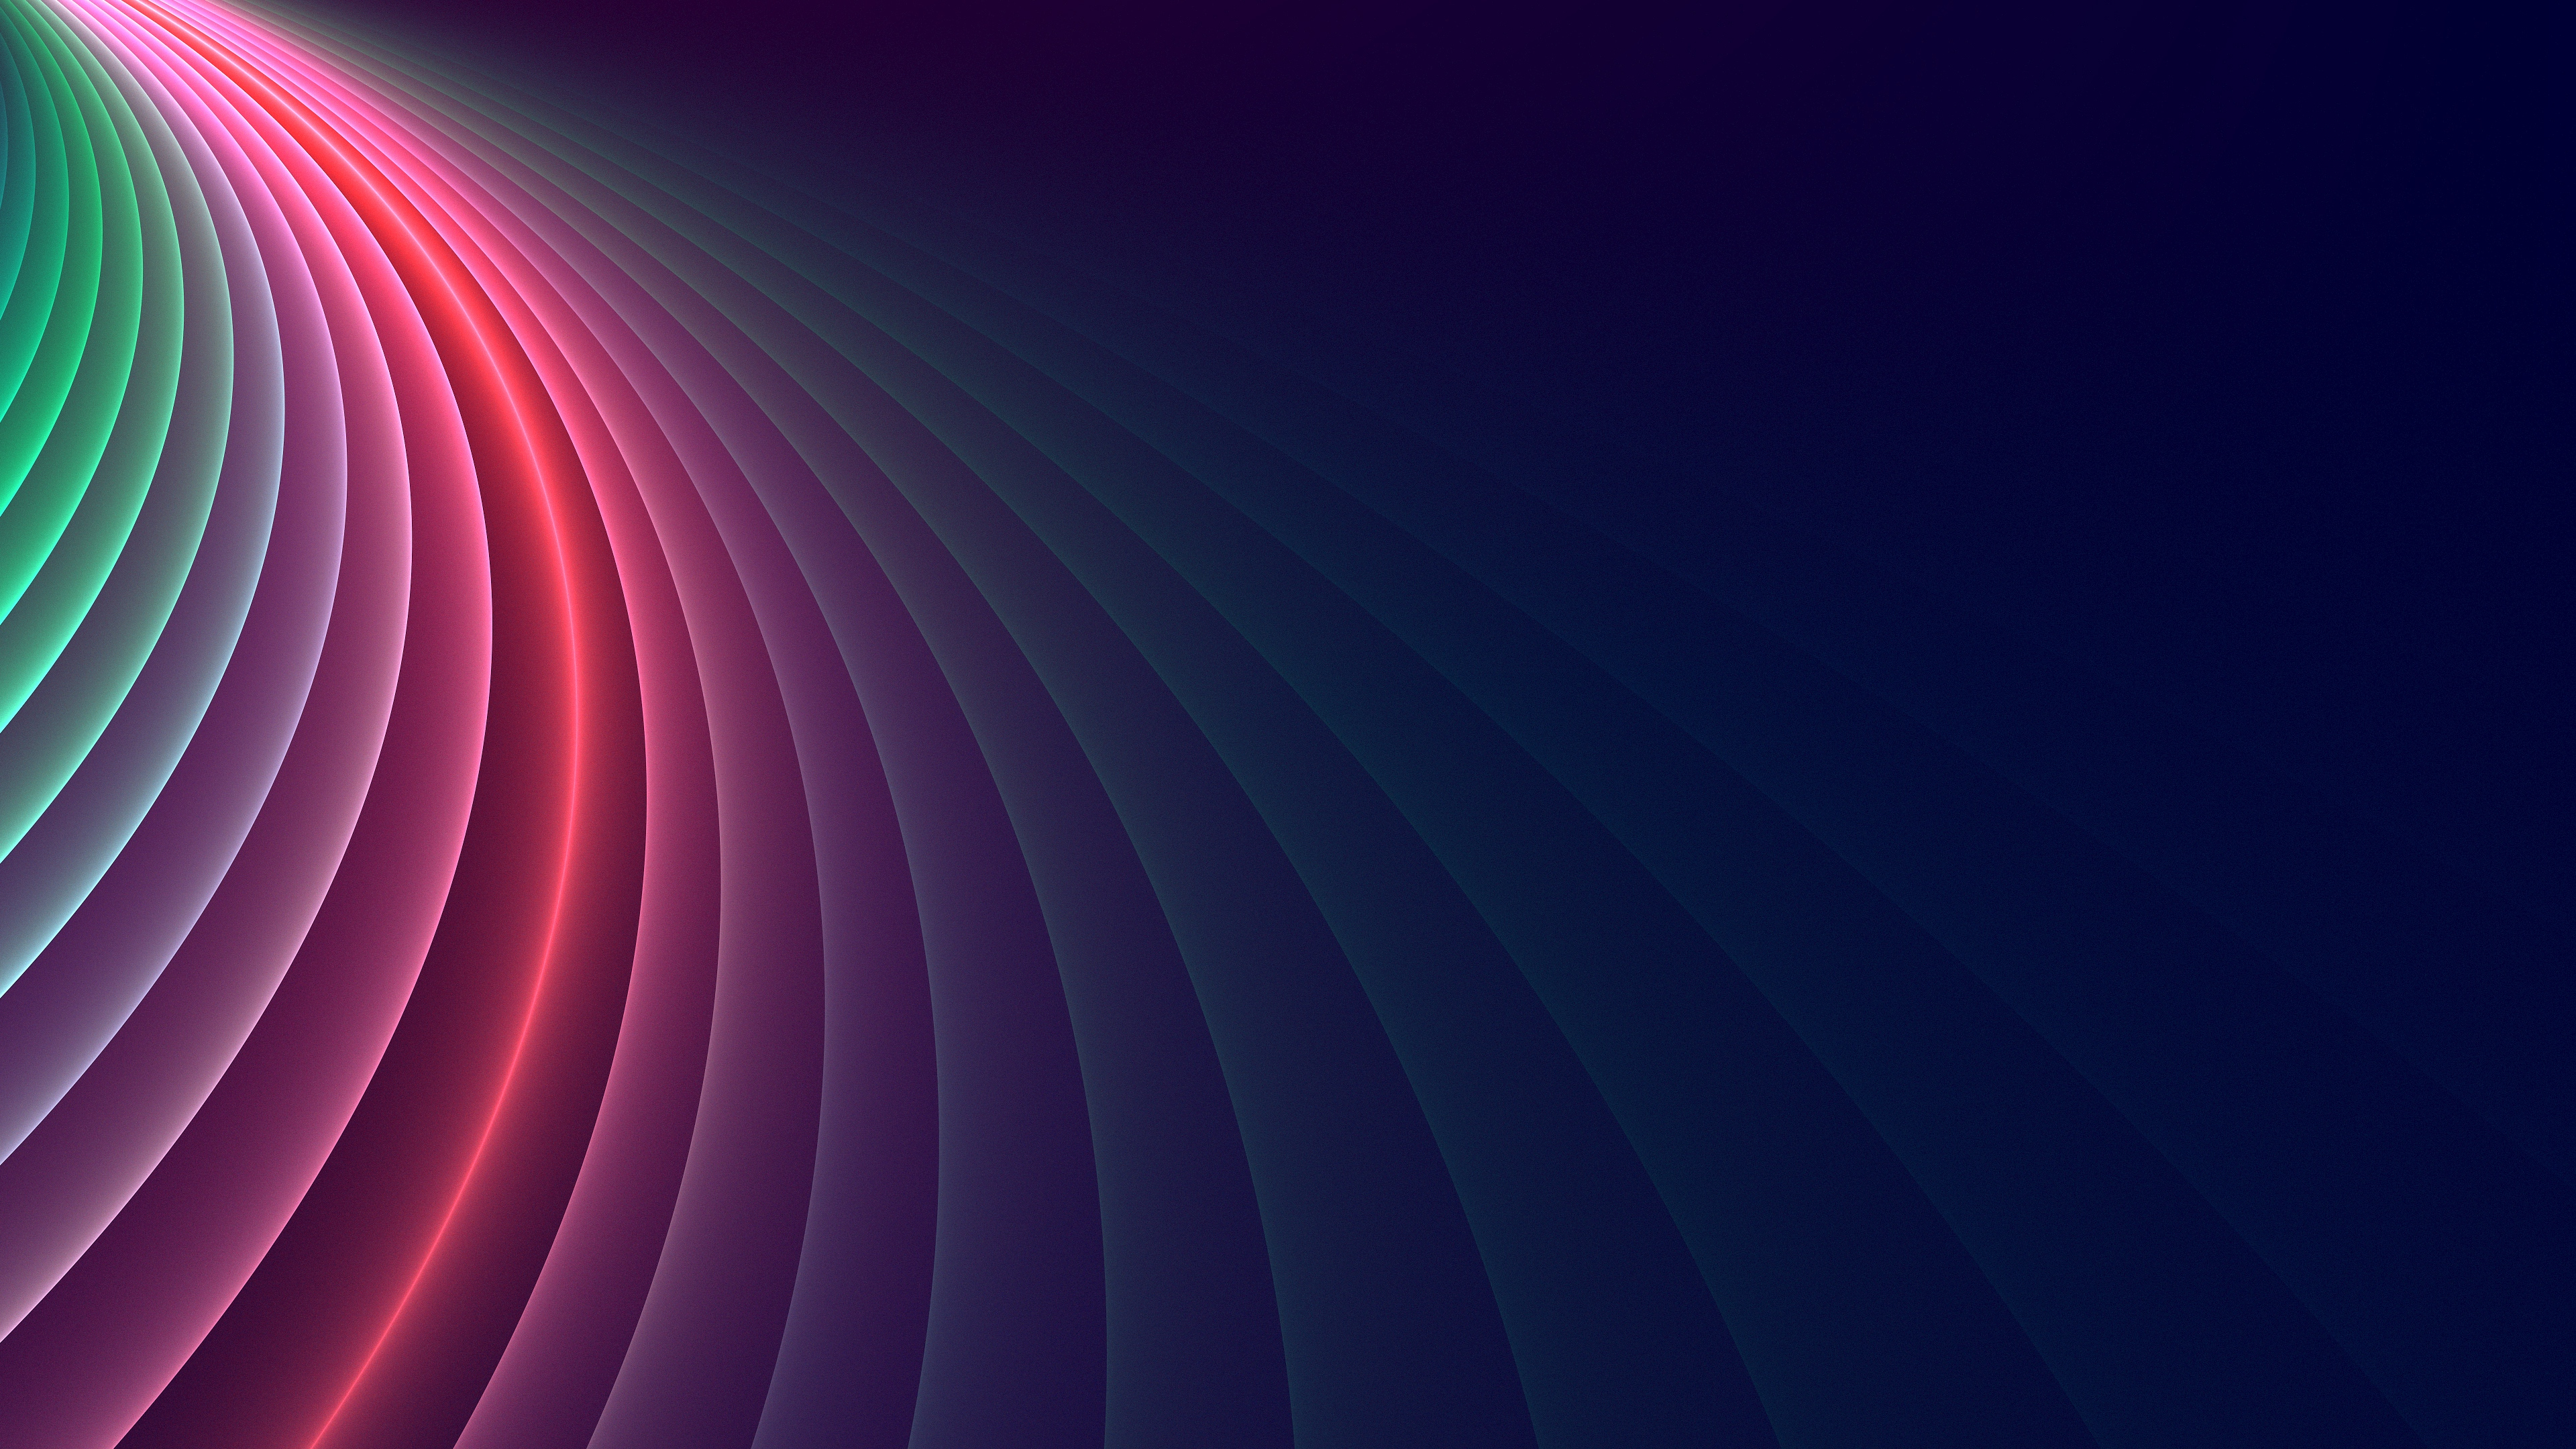 abstract colorful curved glowing 1563221476 - Abstract Colorful Curved Glowing - hd-wallpapers, digital art wallpapers, colorful wallpapers, artwork wallpapers, artist wallpapers, abstract wallpapers, 4k-wallpapers